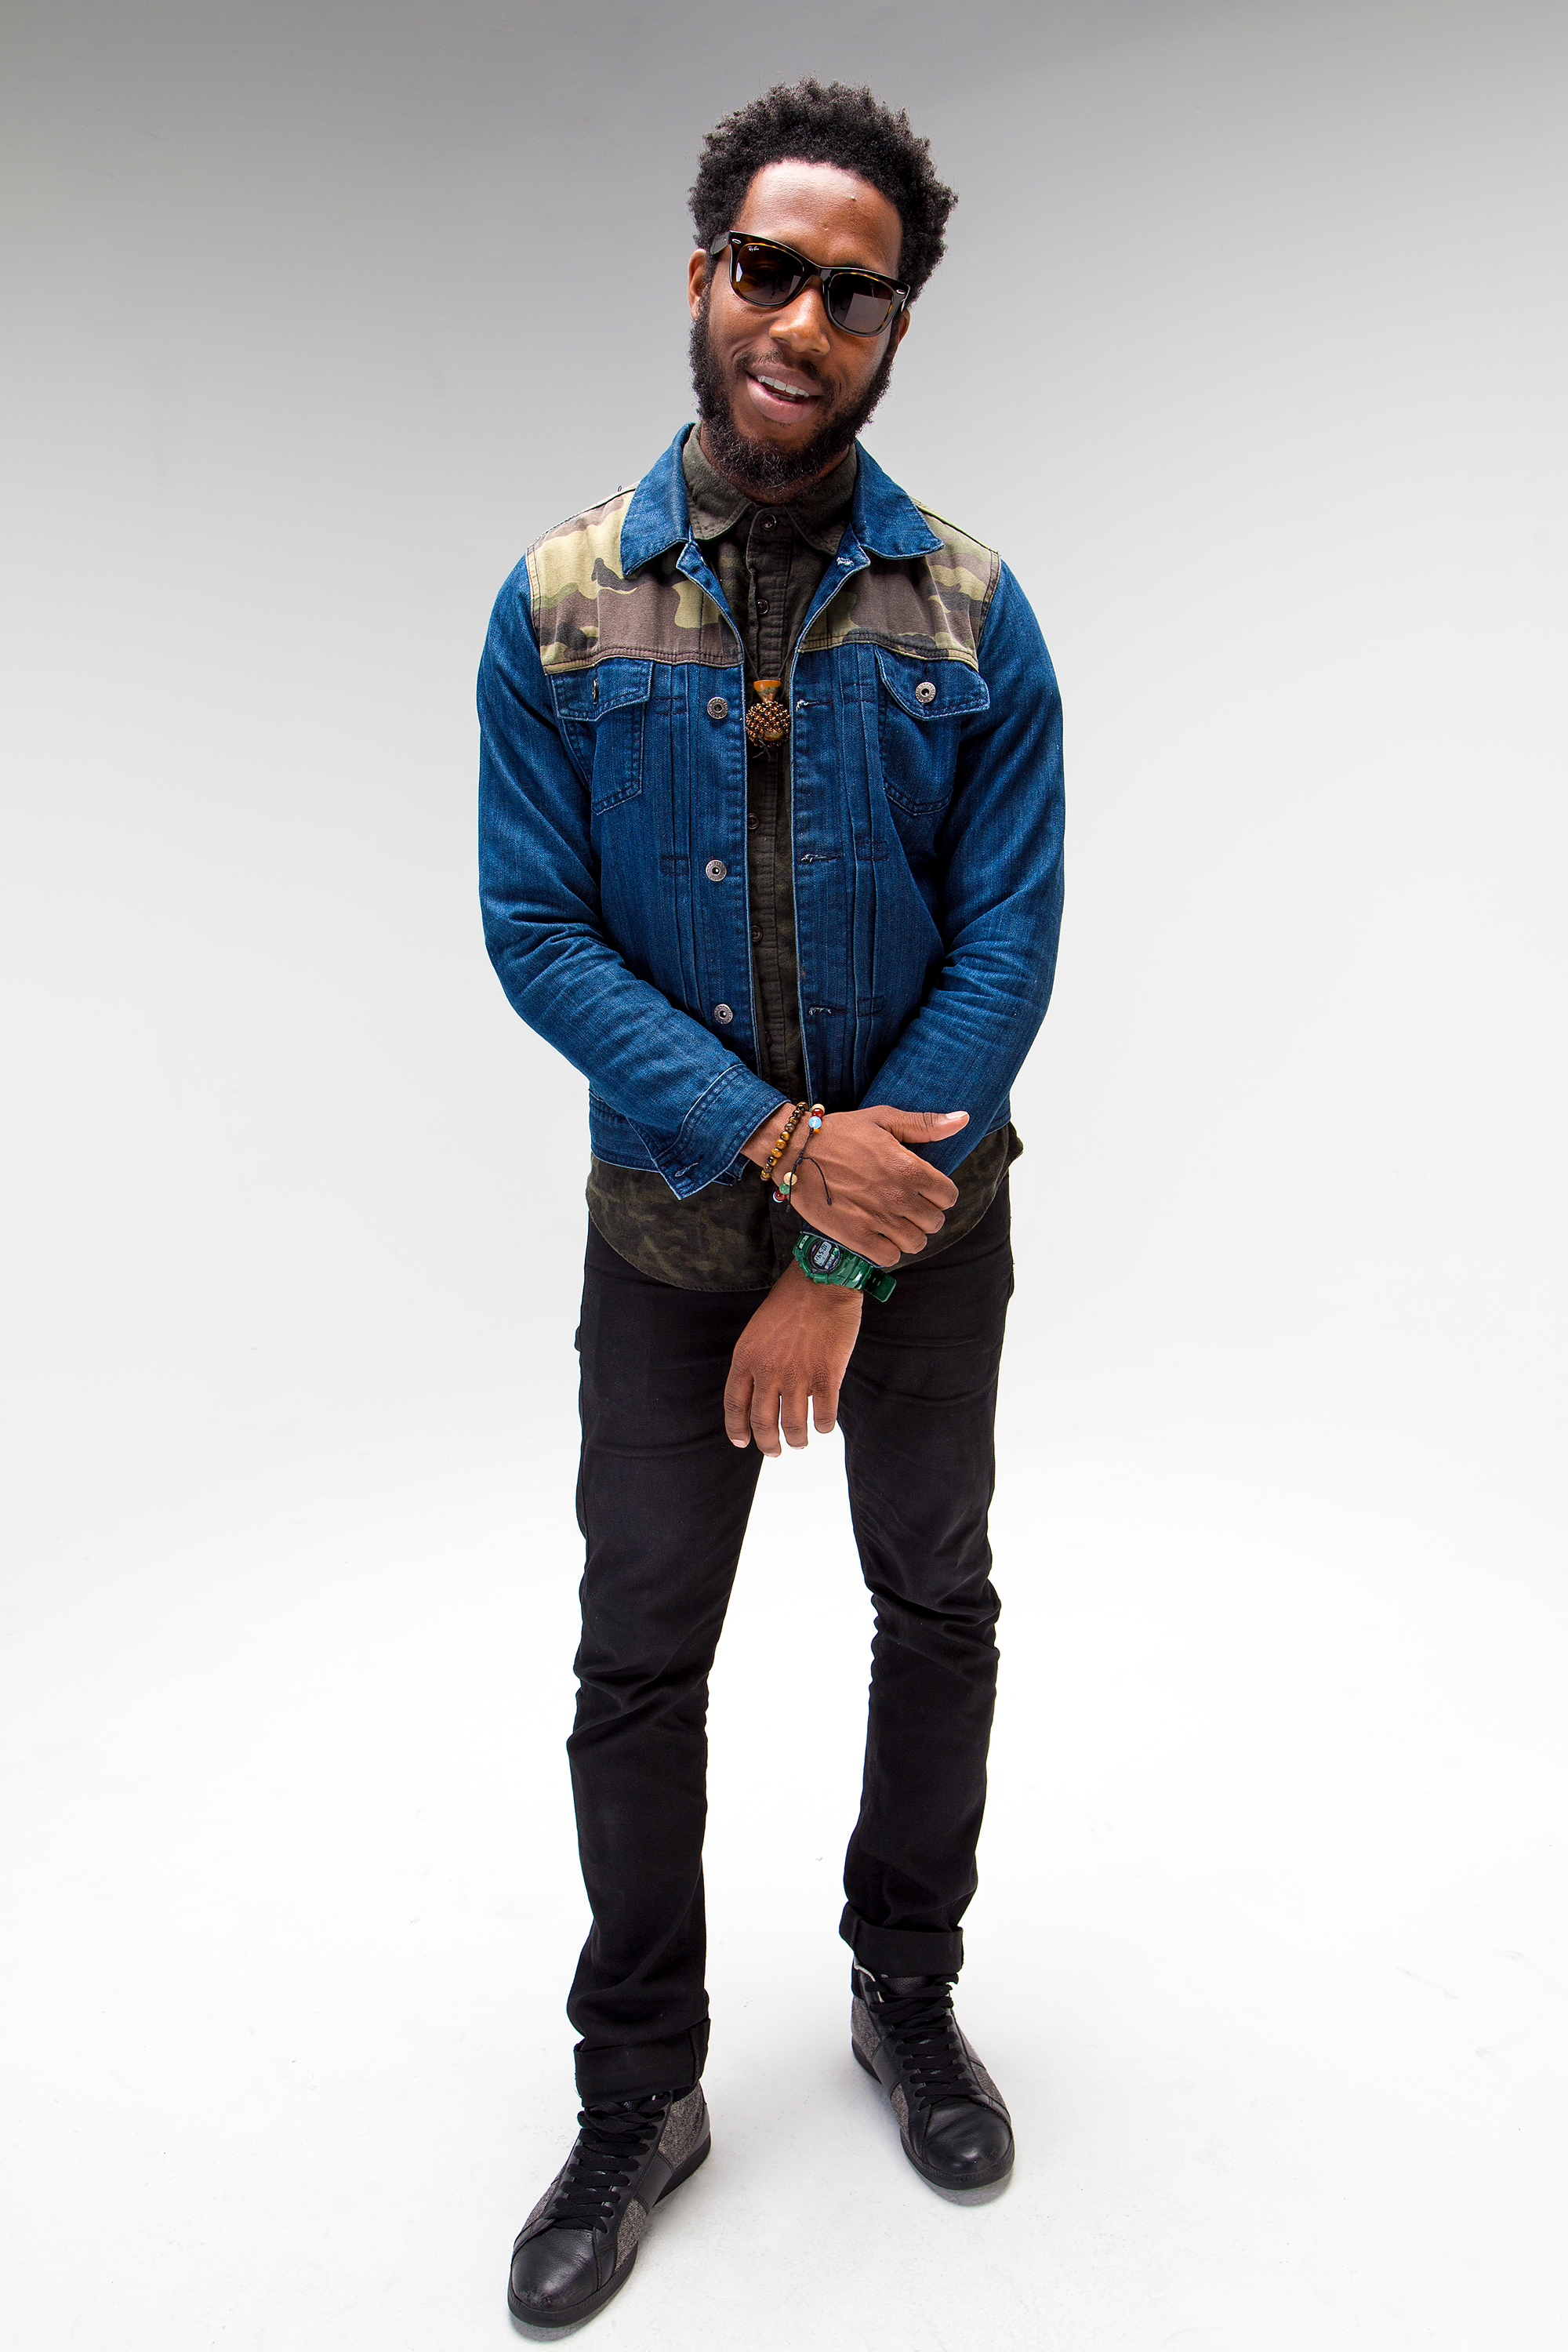 Cory+Henry+Promo+1.png